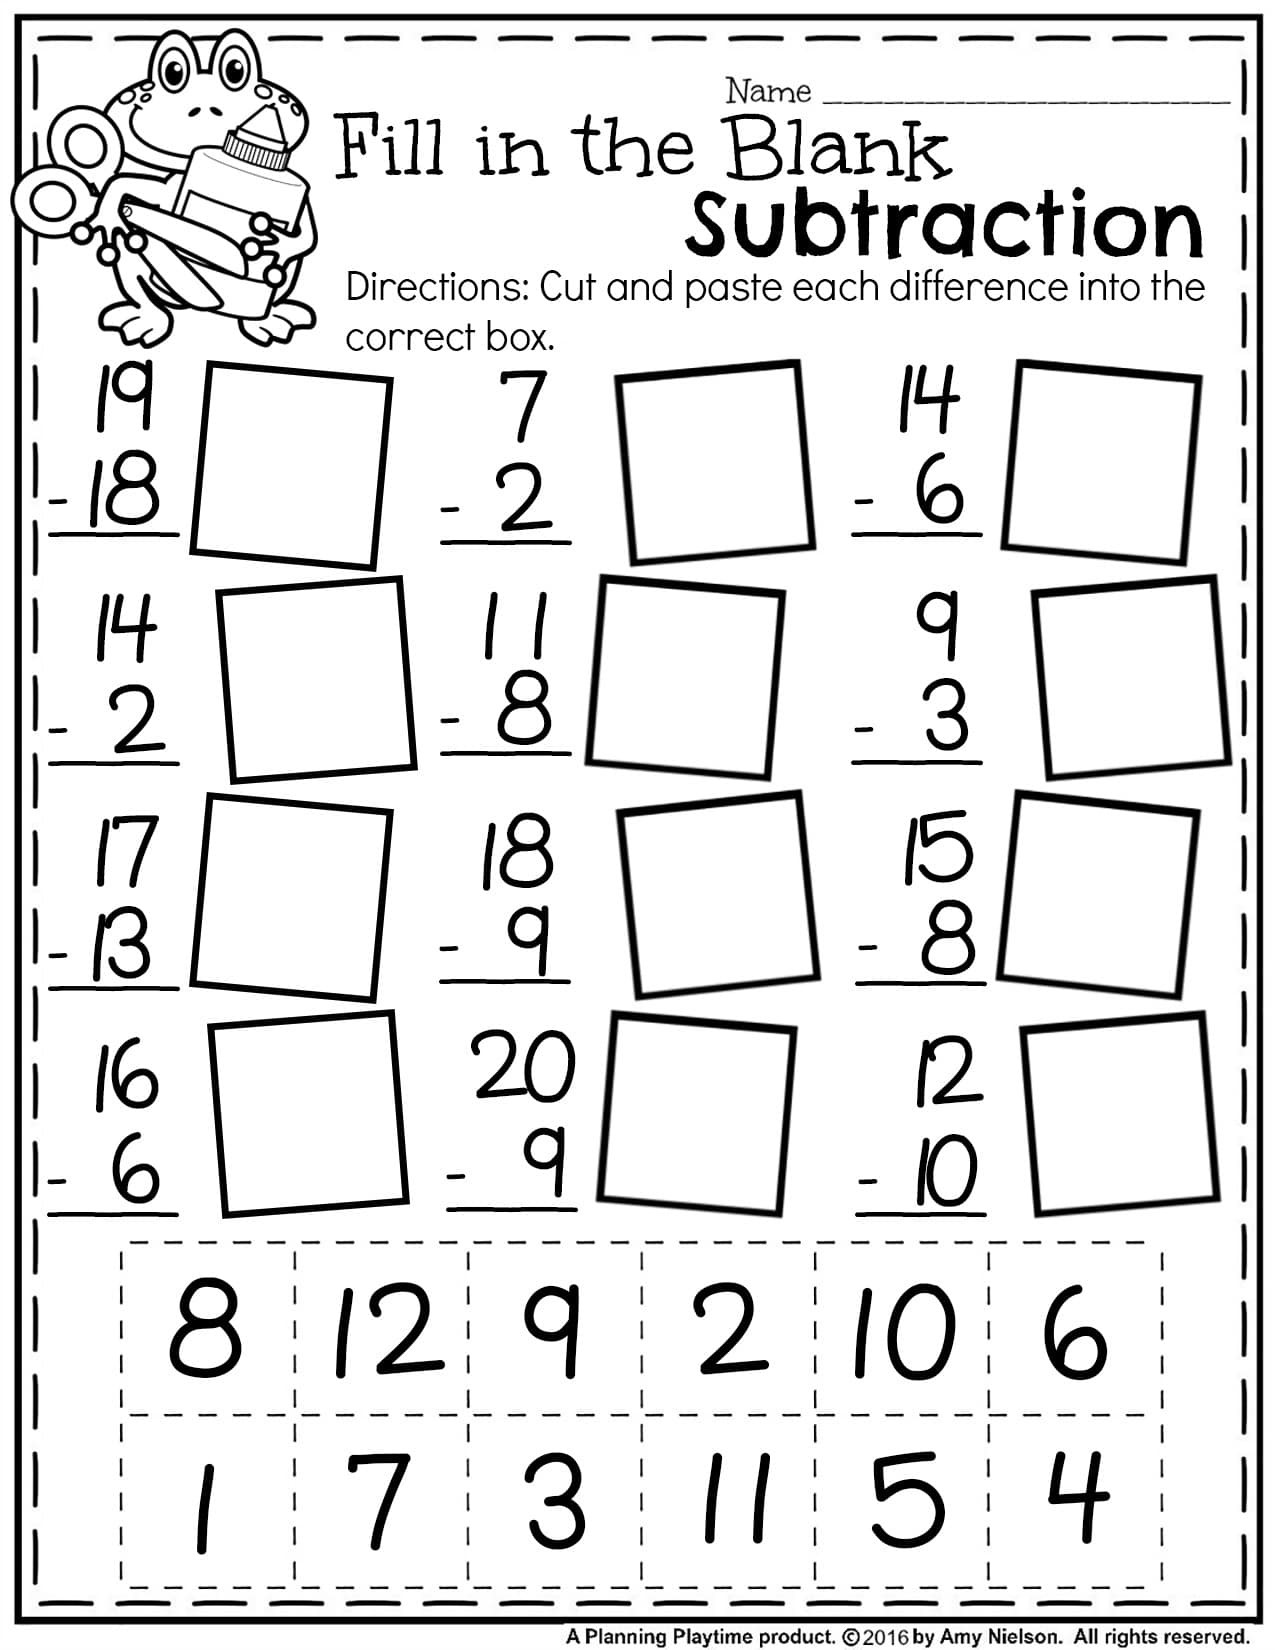 Subtraction Worksheet for 1st Grade Math Worksheet Sheets for First Grade Marvelous Find the 1st